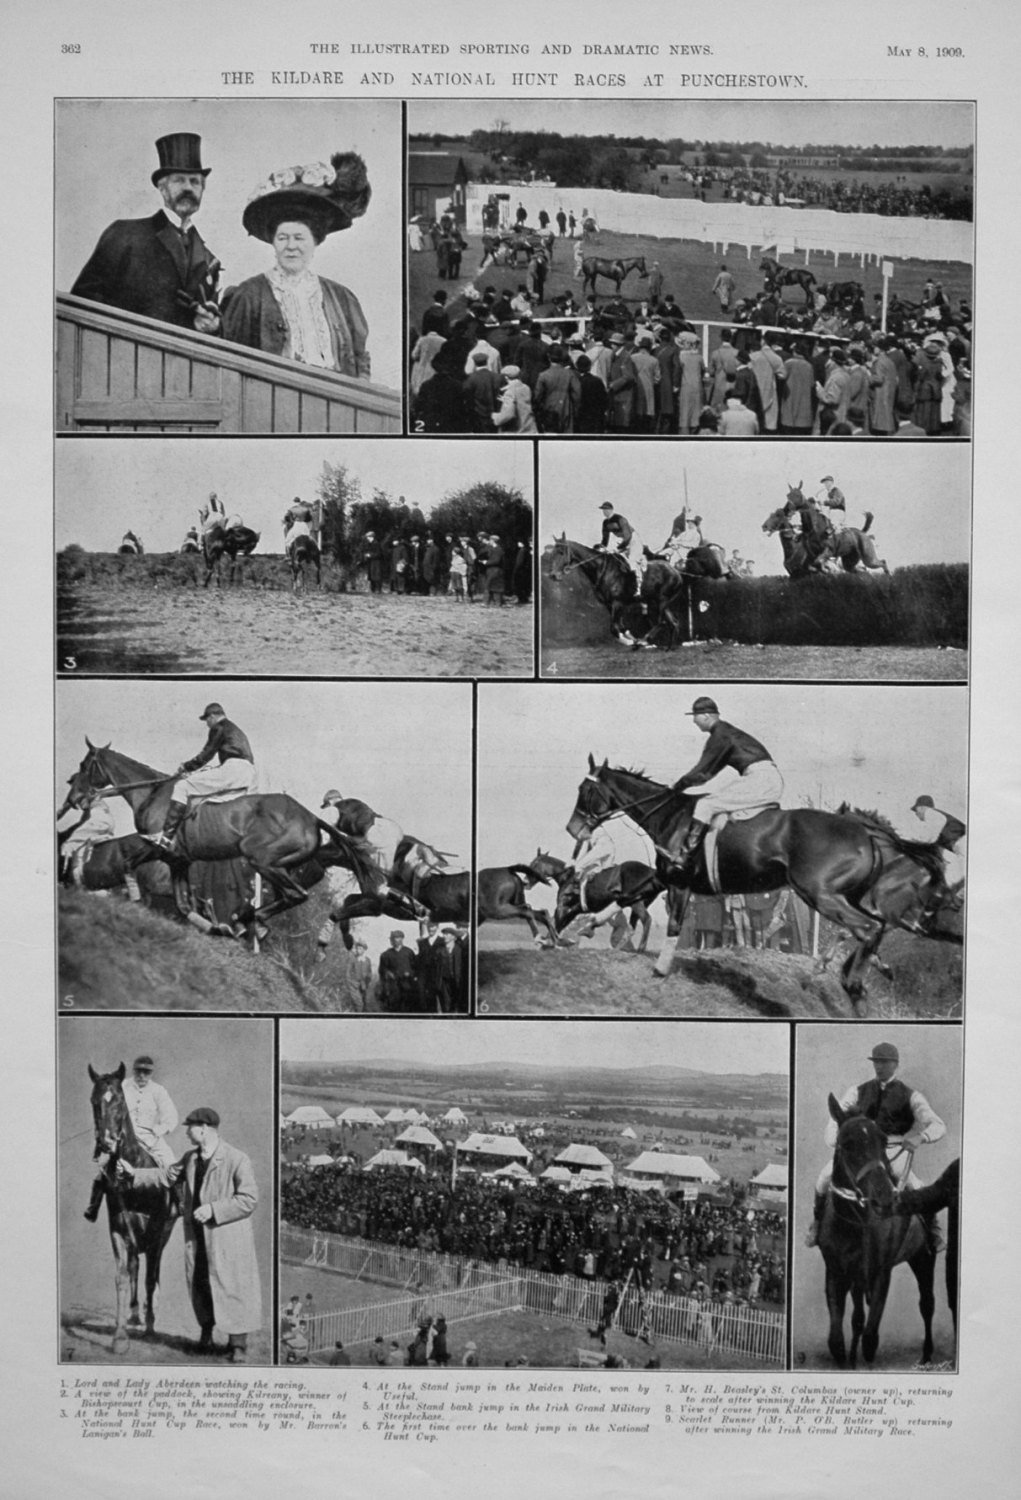 The Kildare and National Hunt Races at Punchestown.